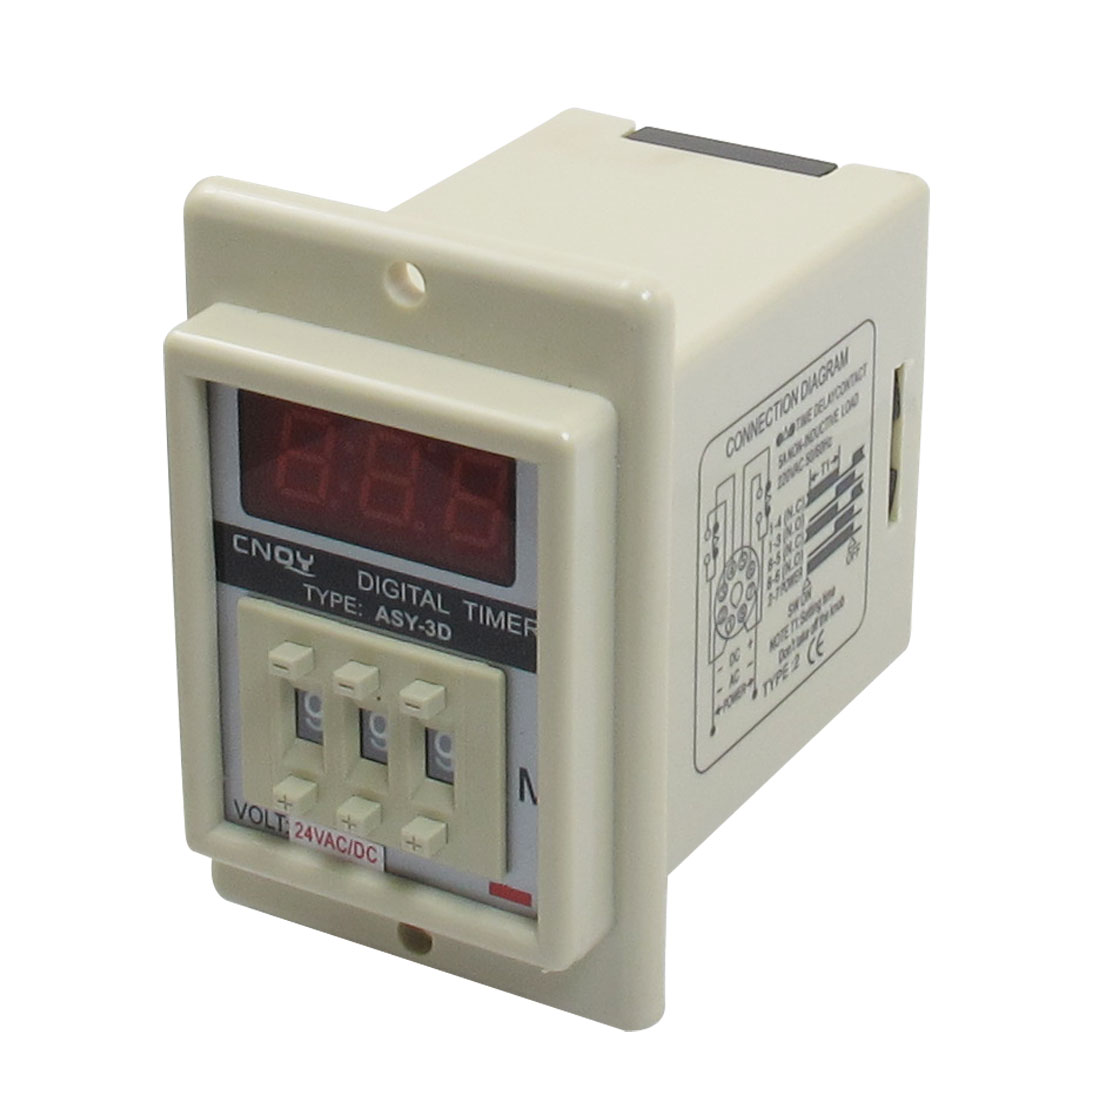 Panel Mount 1-999 Minute White Digital Timer Time Delay Relay AC/DC 24V ASY-3D